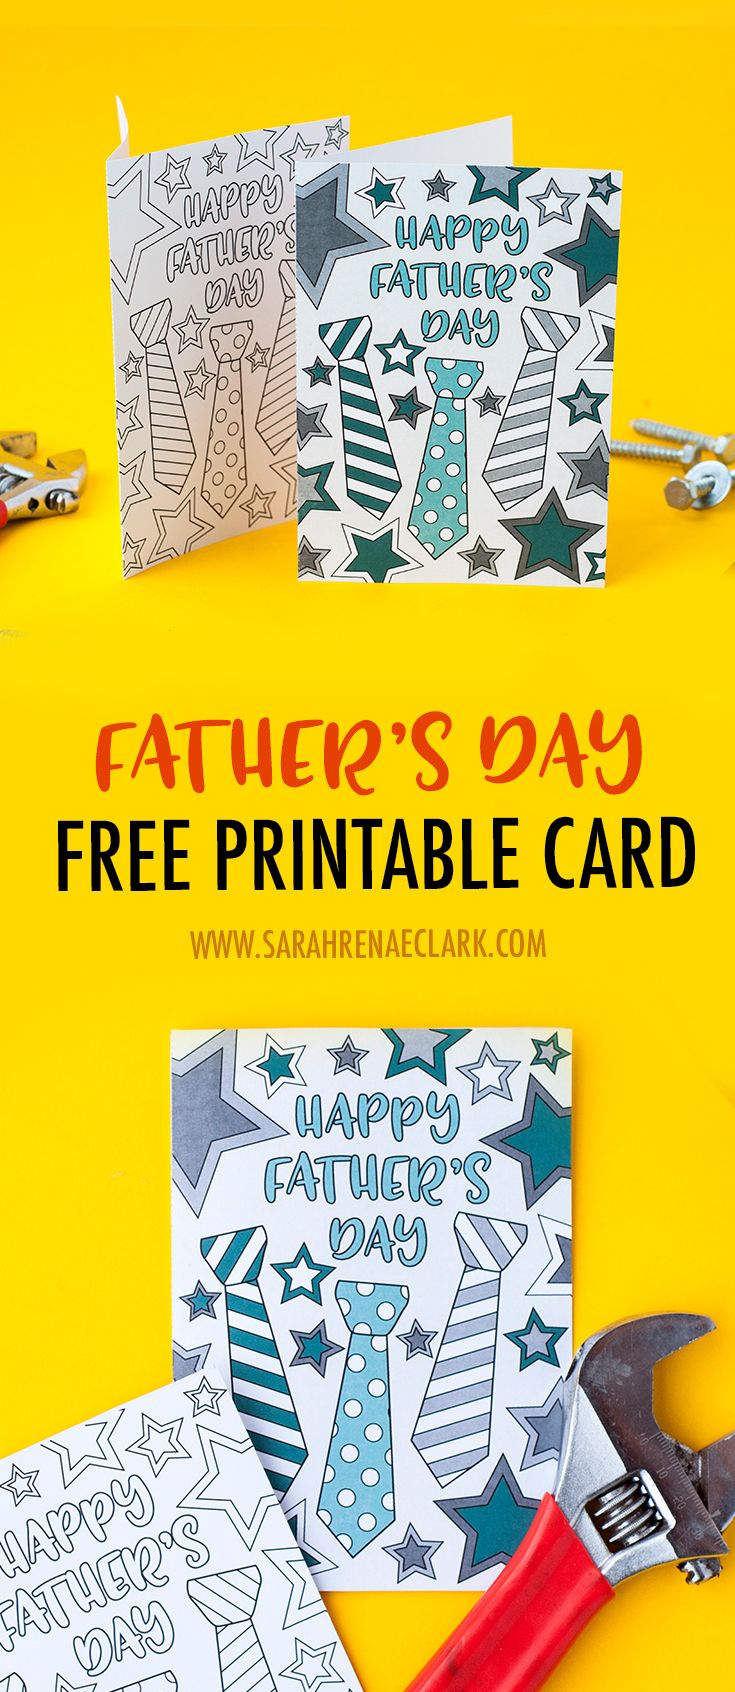 This free printable Father's Day card is fun to color in and a great way to pe...